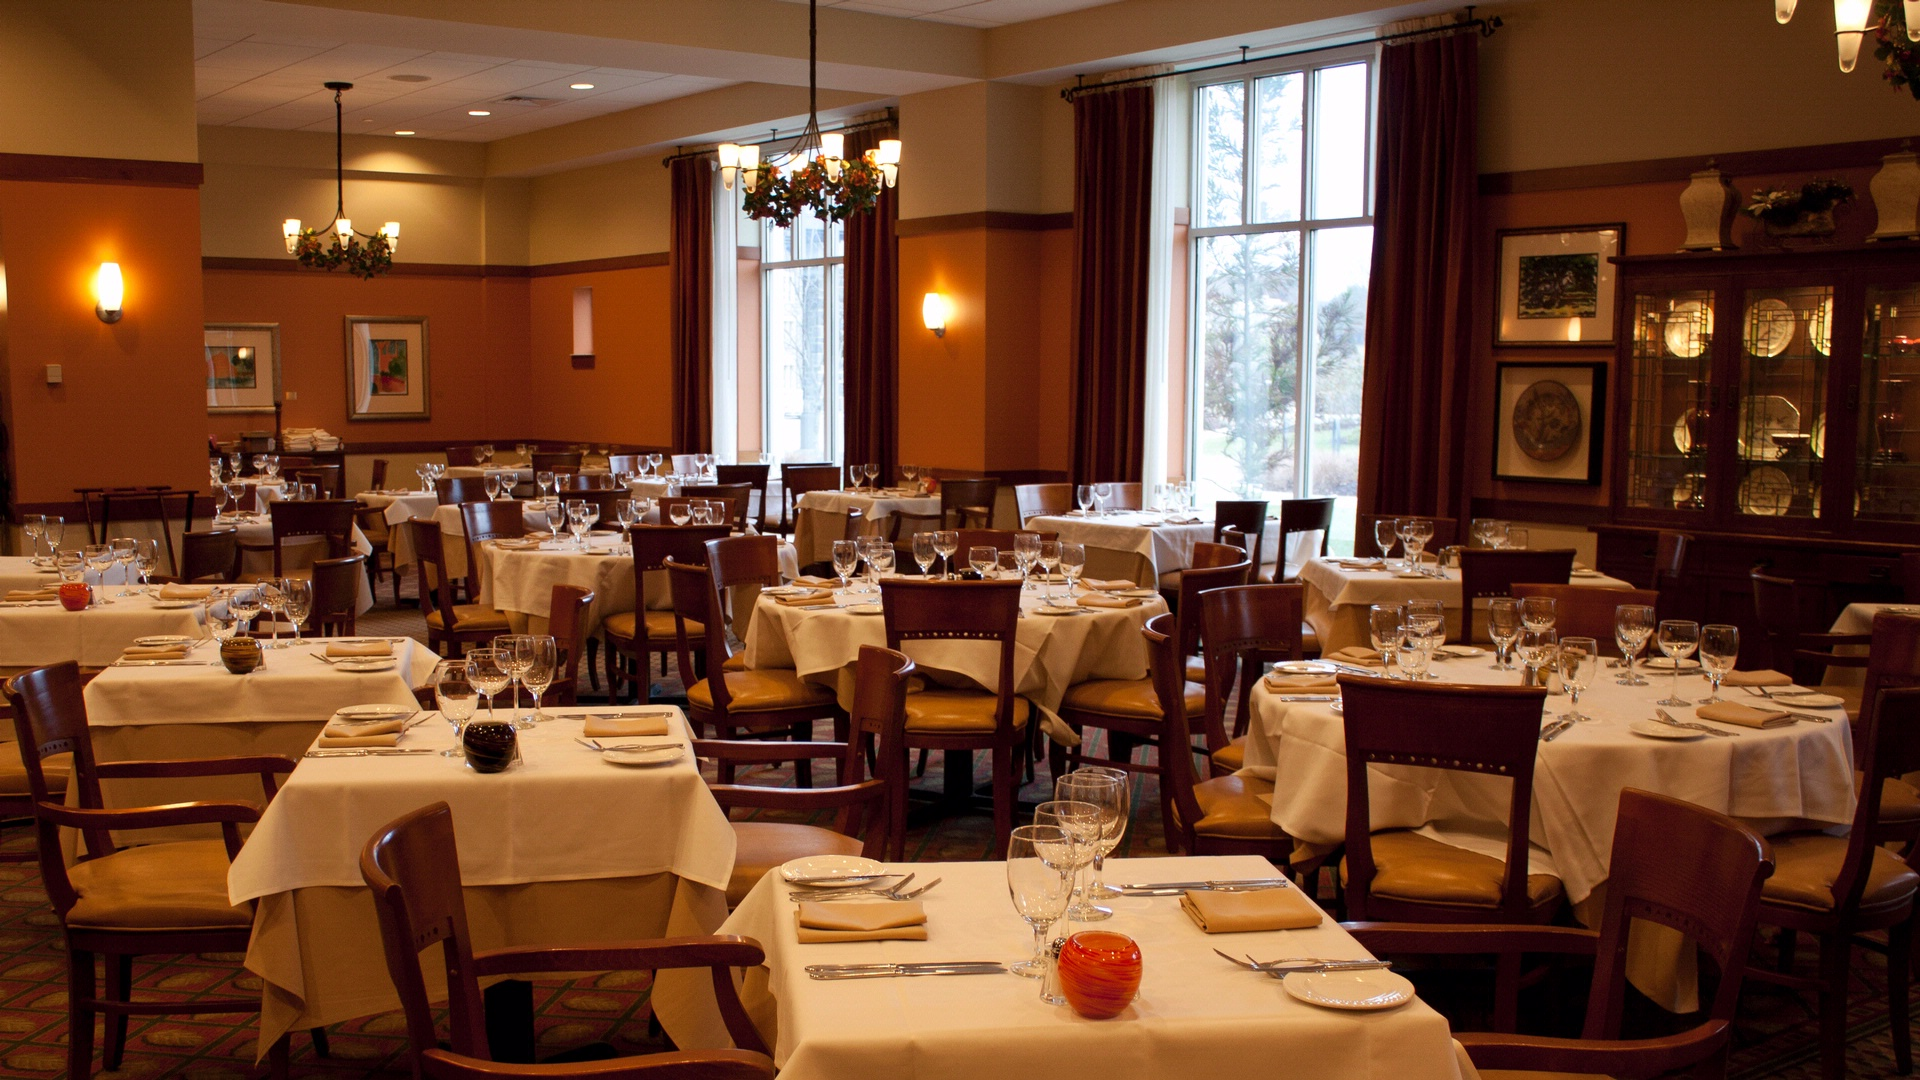 Preston S Restaurant In Blacksburg Va The Inn At